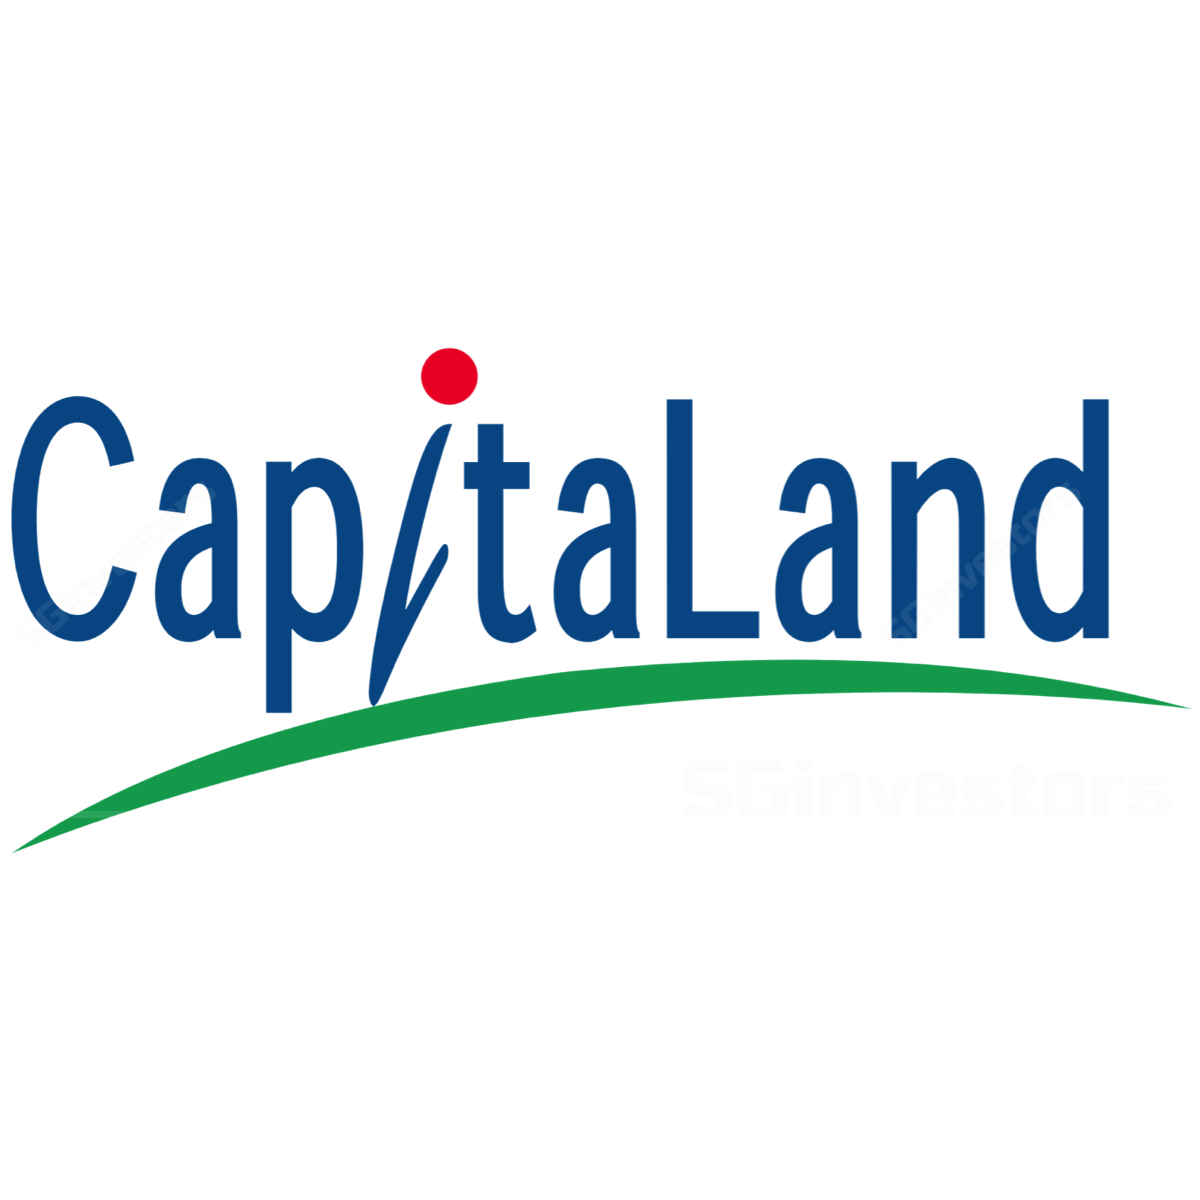 CapitaLand - DBS Vickers 2017-06-05: Optimising Capital Through Asset Reconstitution Strategy